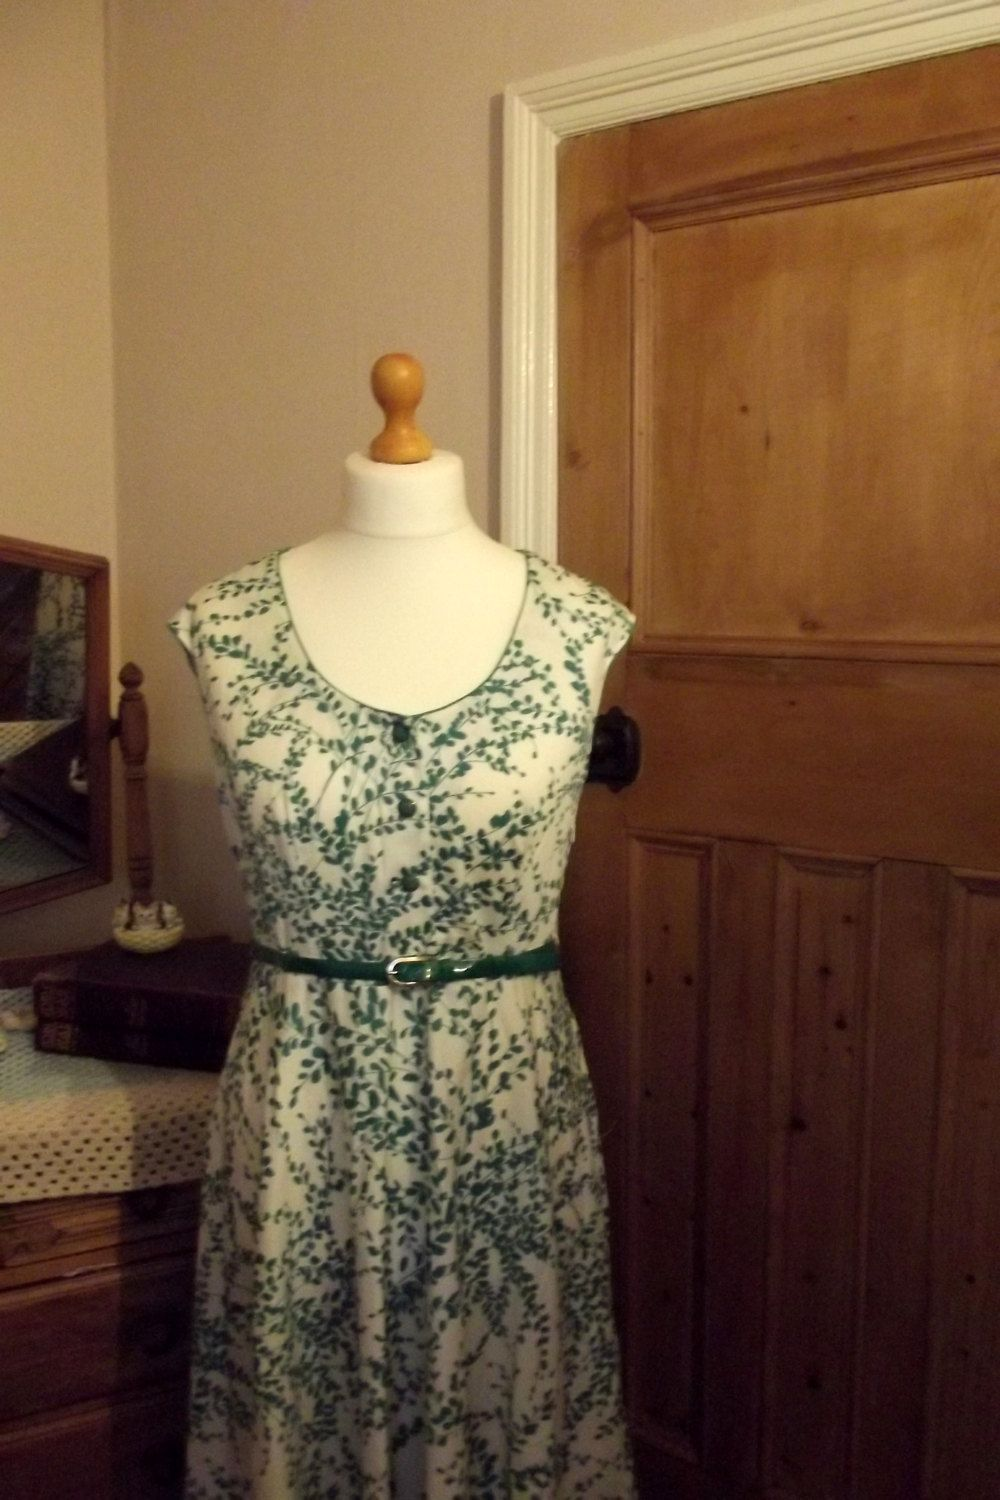 womens green white floral summer dress 80s belt sundress sun uk16 us 14 large vintage clothing. £23.00, via Etsy.